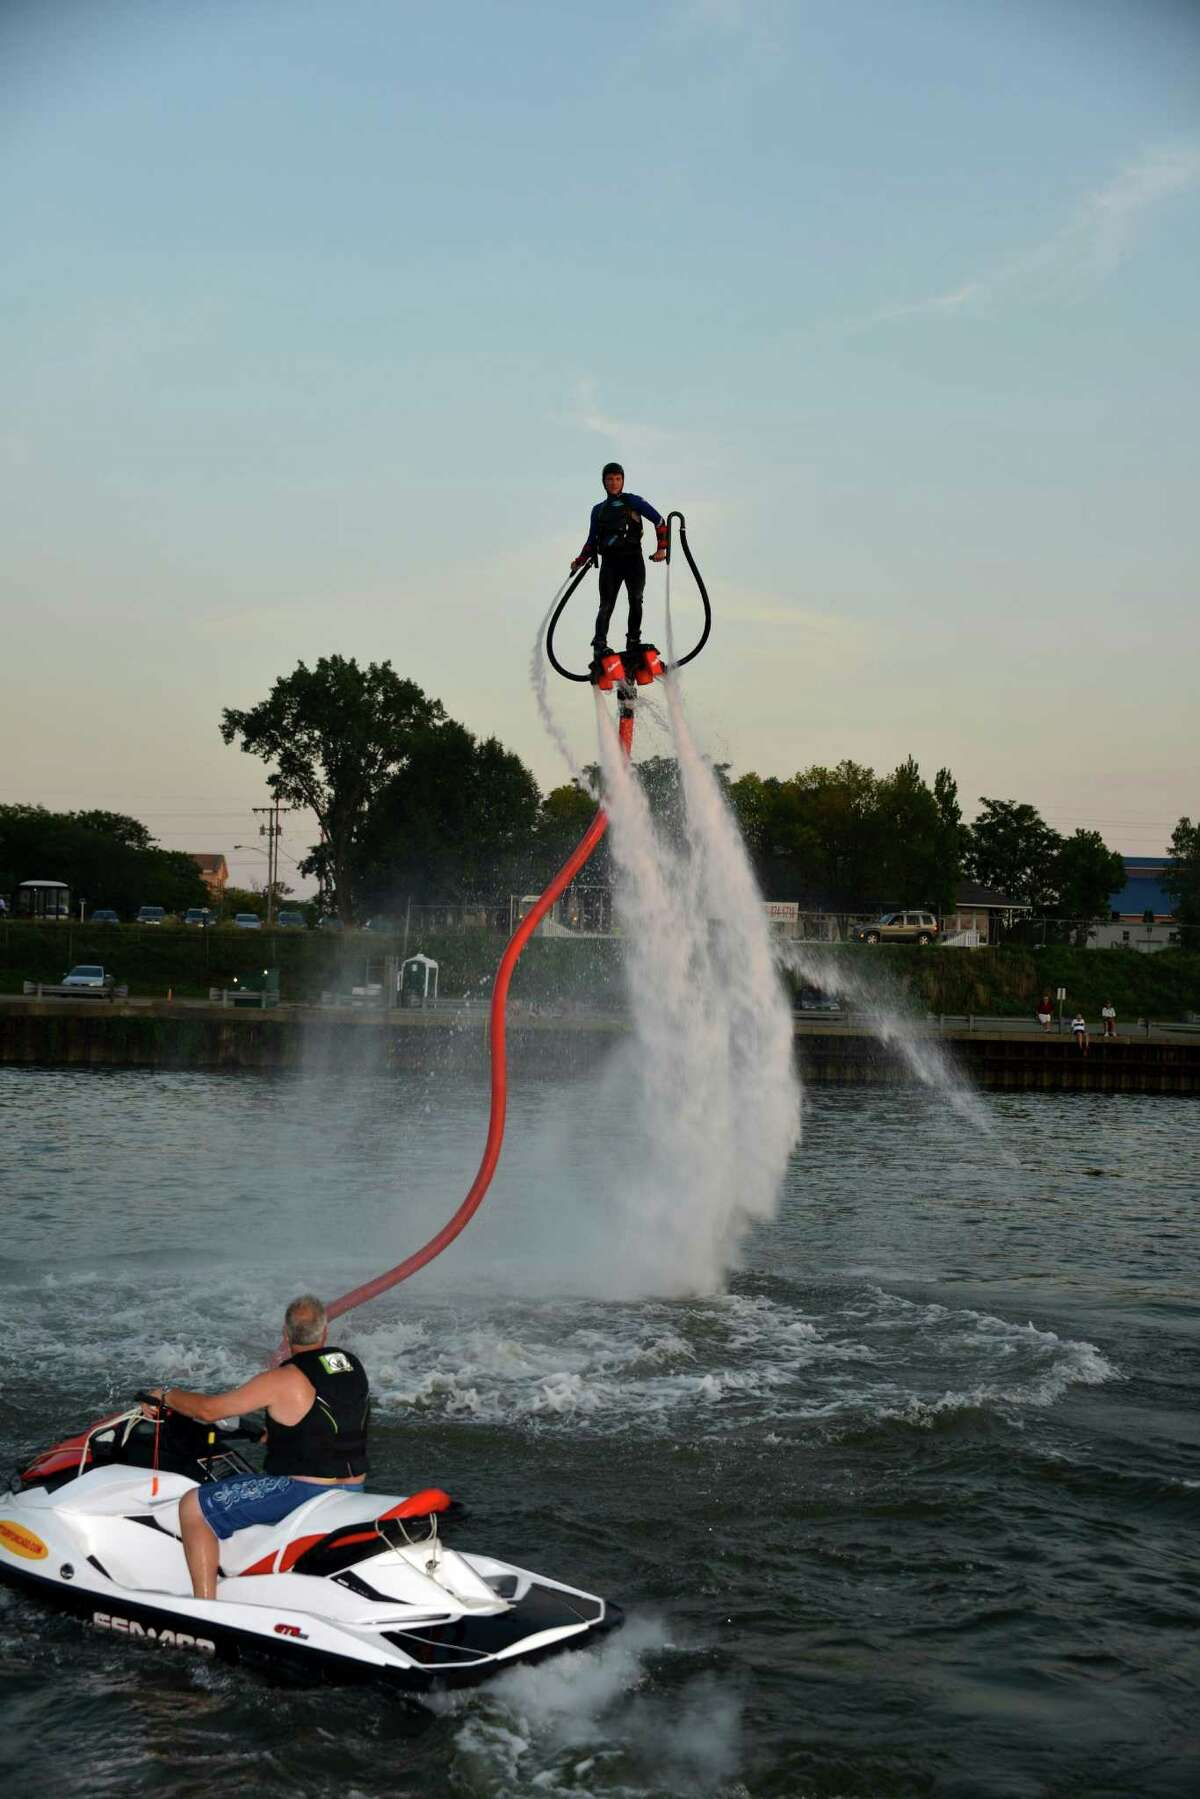 Superhero abilities like flying through the air or speeding underwater can become a reality on Flyboard, a new jet-propulsion technology that will be demonstrated at the Norwalk Boat Show. Flyboard works with a Personal Watercraft (PWC) and users can fly up to 35 ft. in the air and dive deep. Movements are controlled by tilting feet and using handheld nozzles to help with stabilization, similar to ski poles.